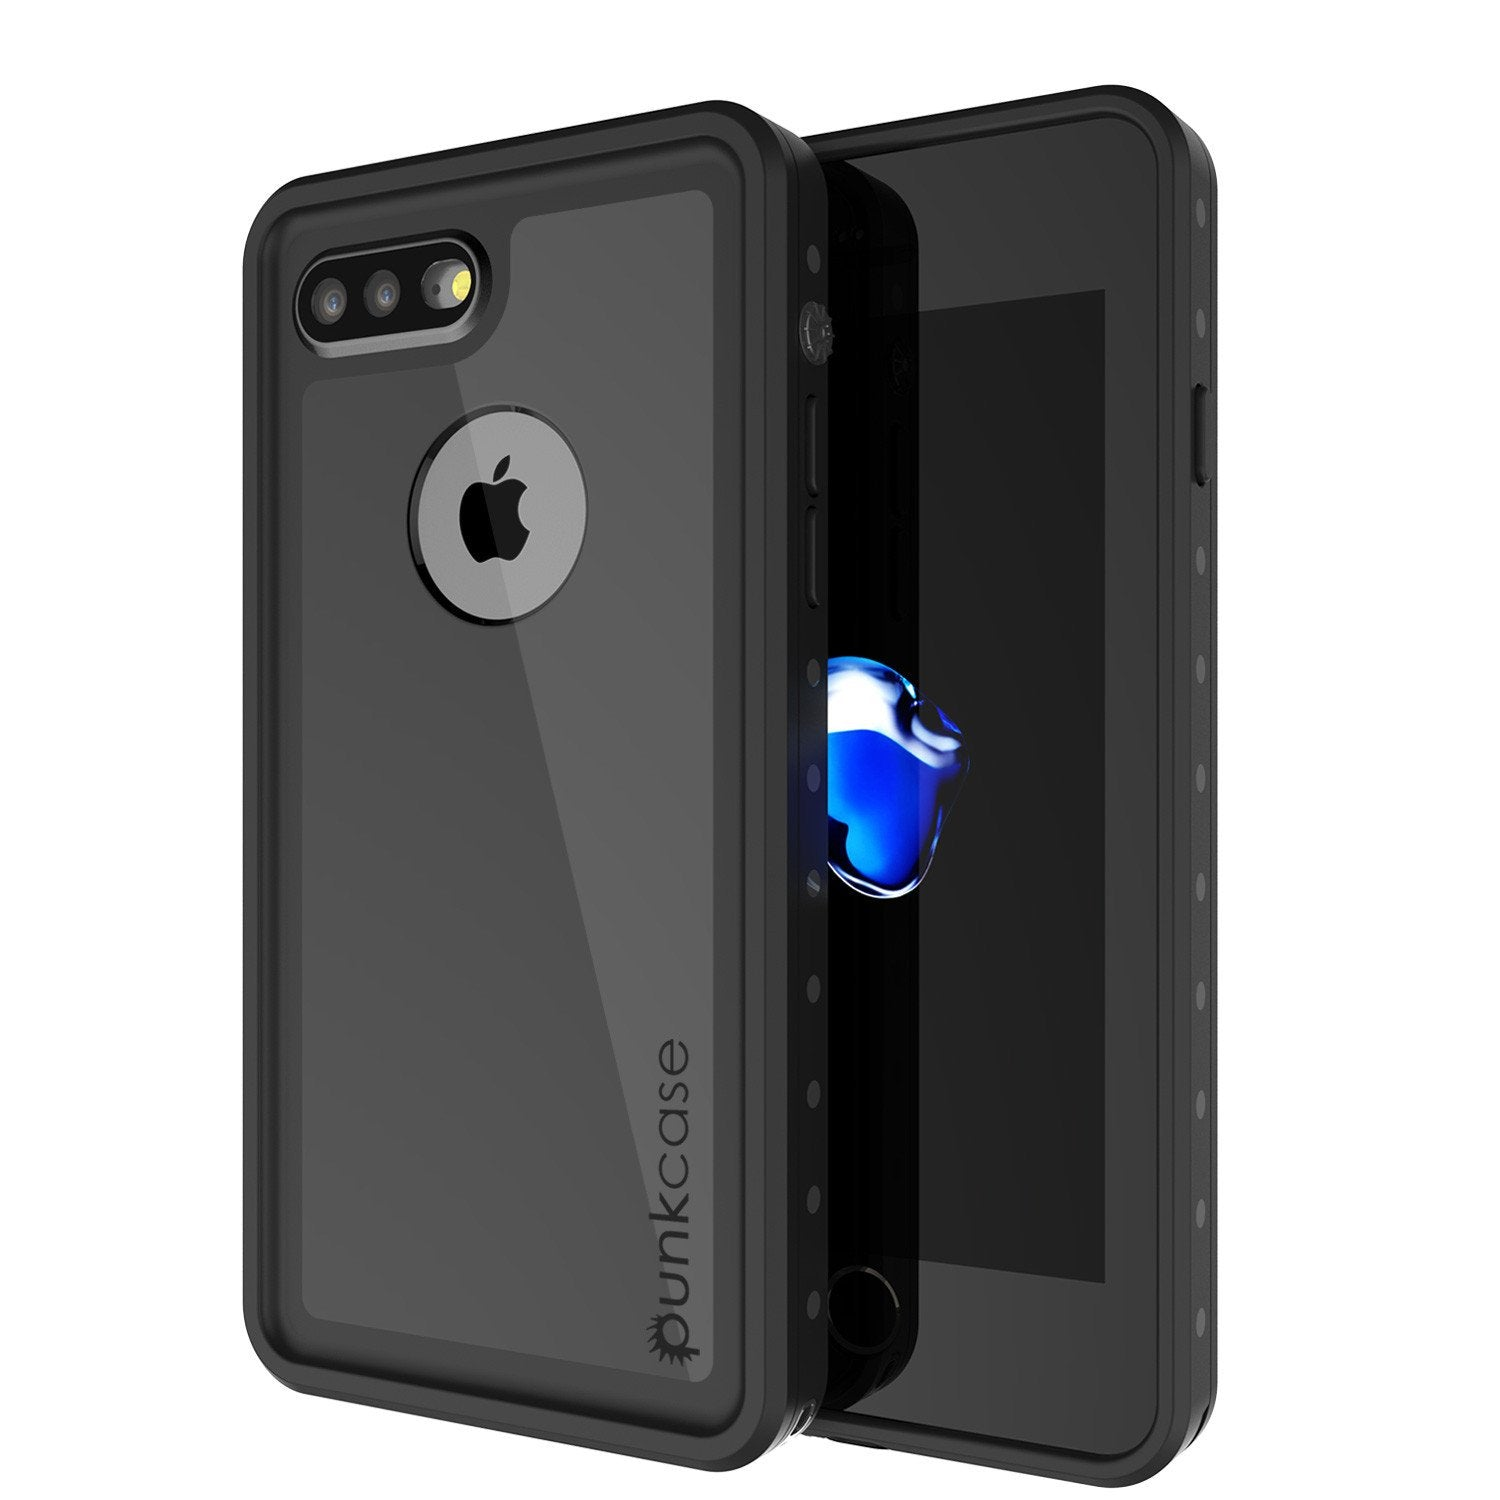 iPhone 8+ Plus Waterproof Case, Punkcase [StudStar Series] [Black] [Slim Fit] [IP68 Certified] [Shockproof] [Dirtproof] Armor Cover